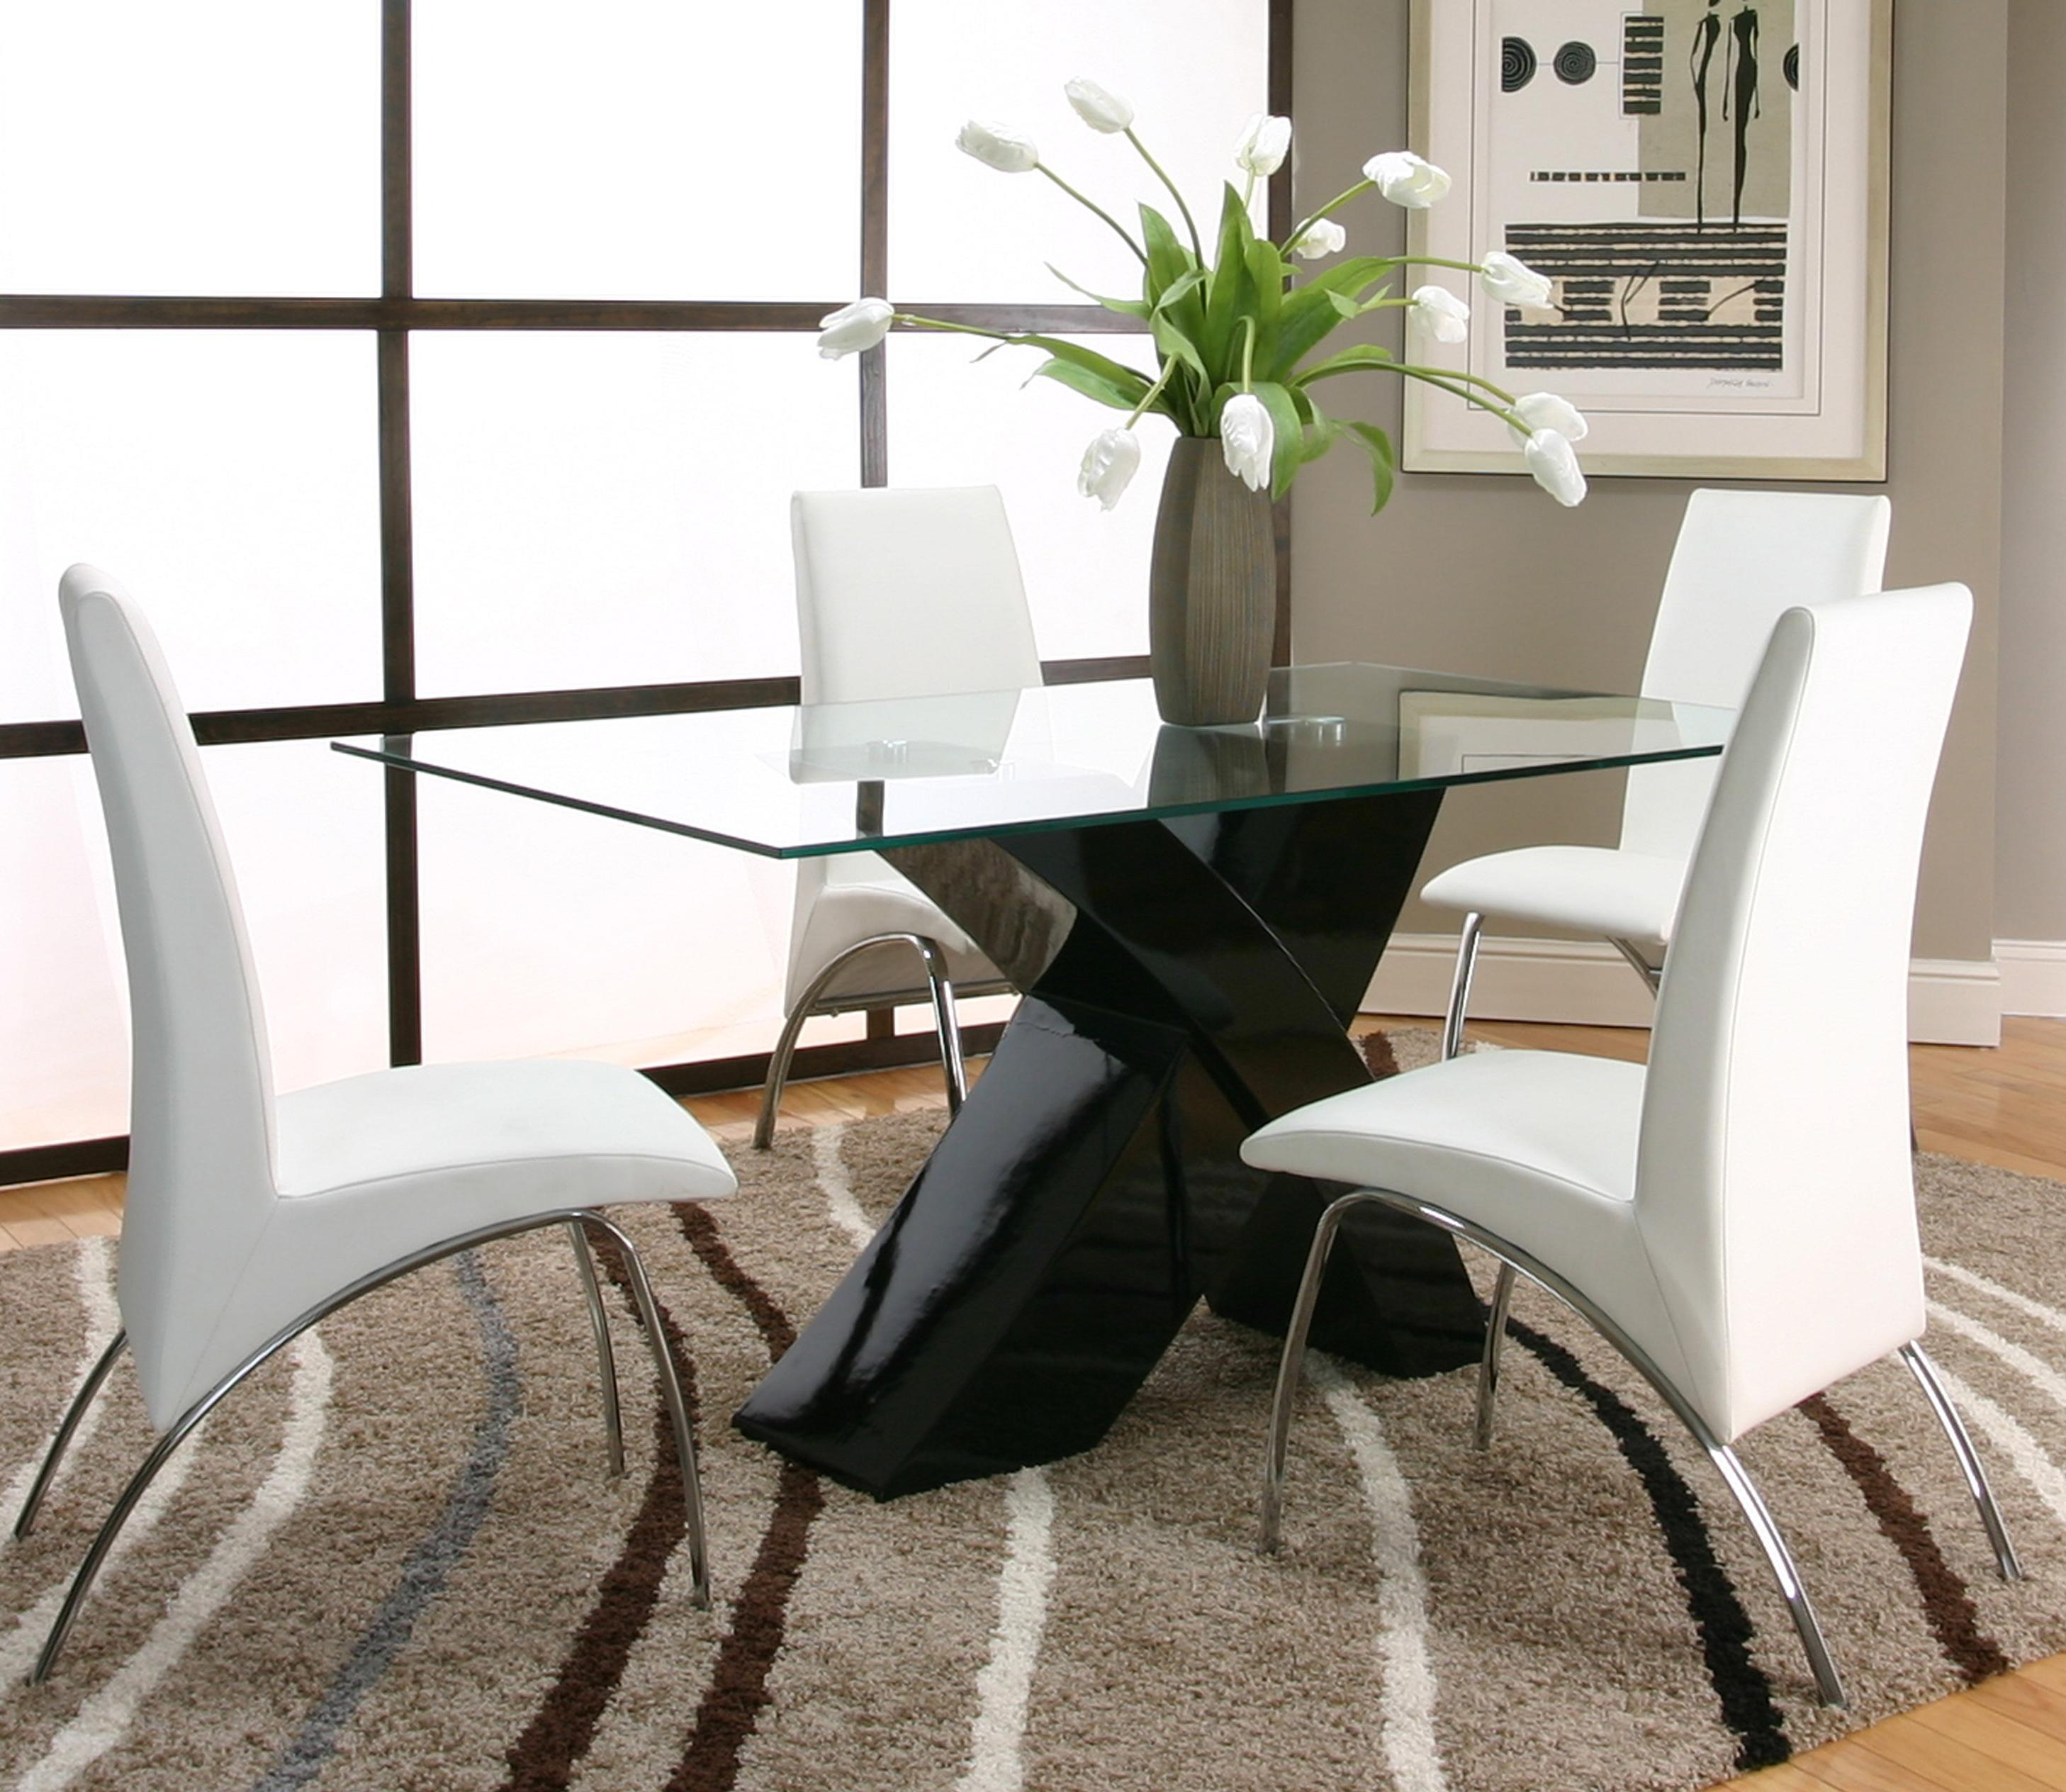 5 Piece Rectangular Glass Top Table With Black Base And White Chairs